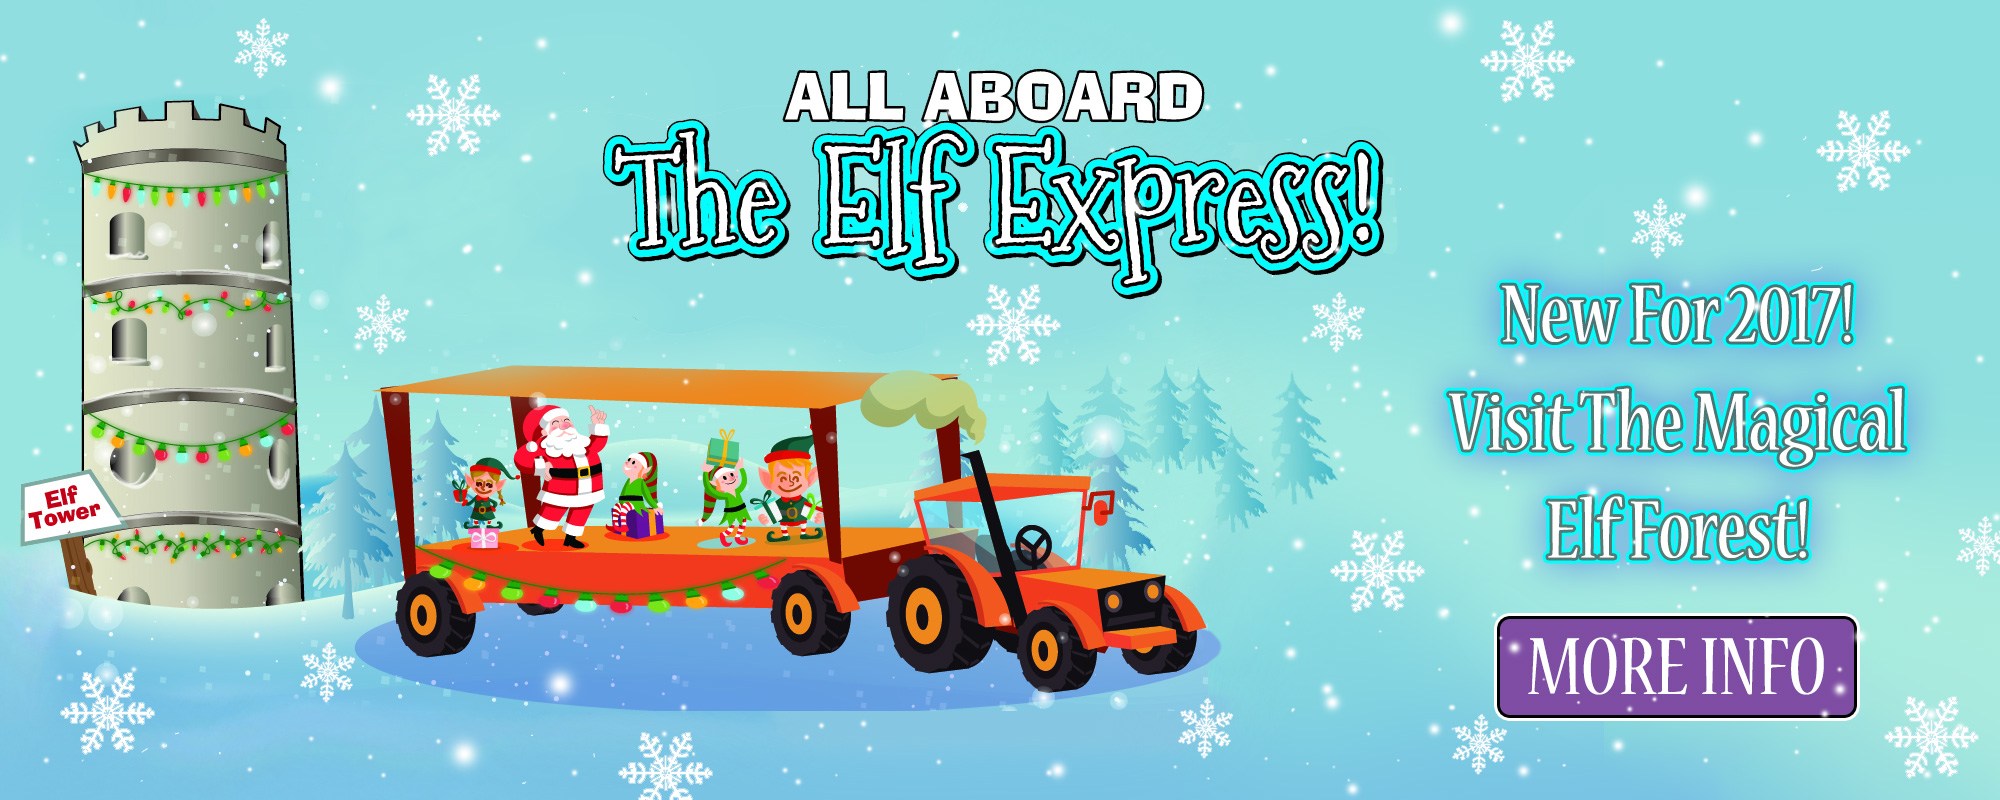 The elf express and magical elf forest christmas event at Quex Activity Centre, Thanet